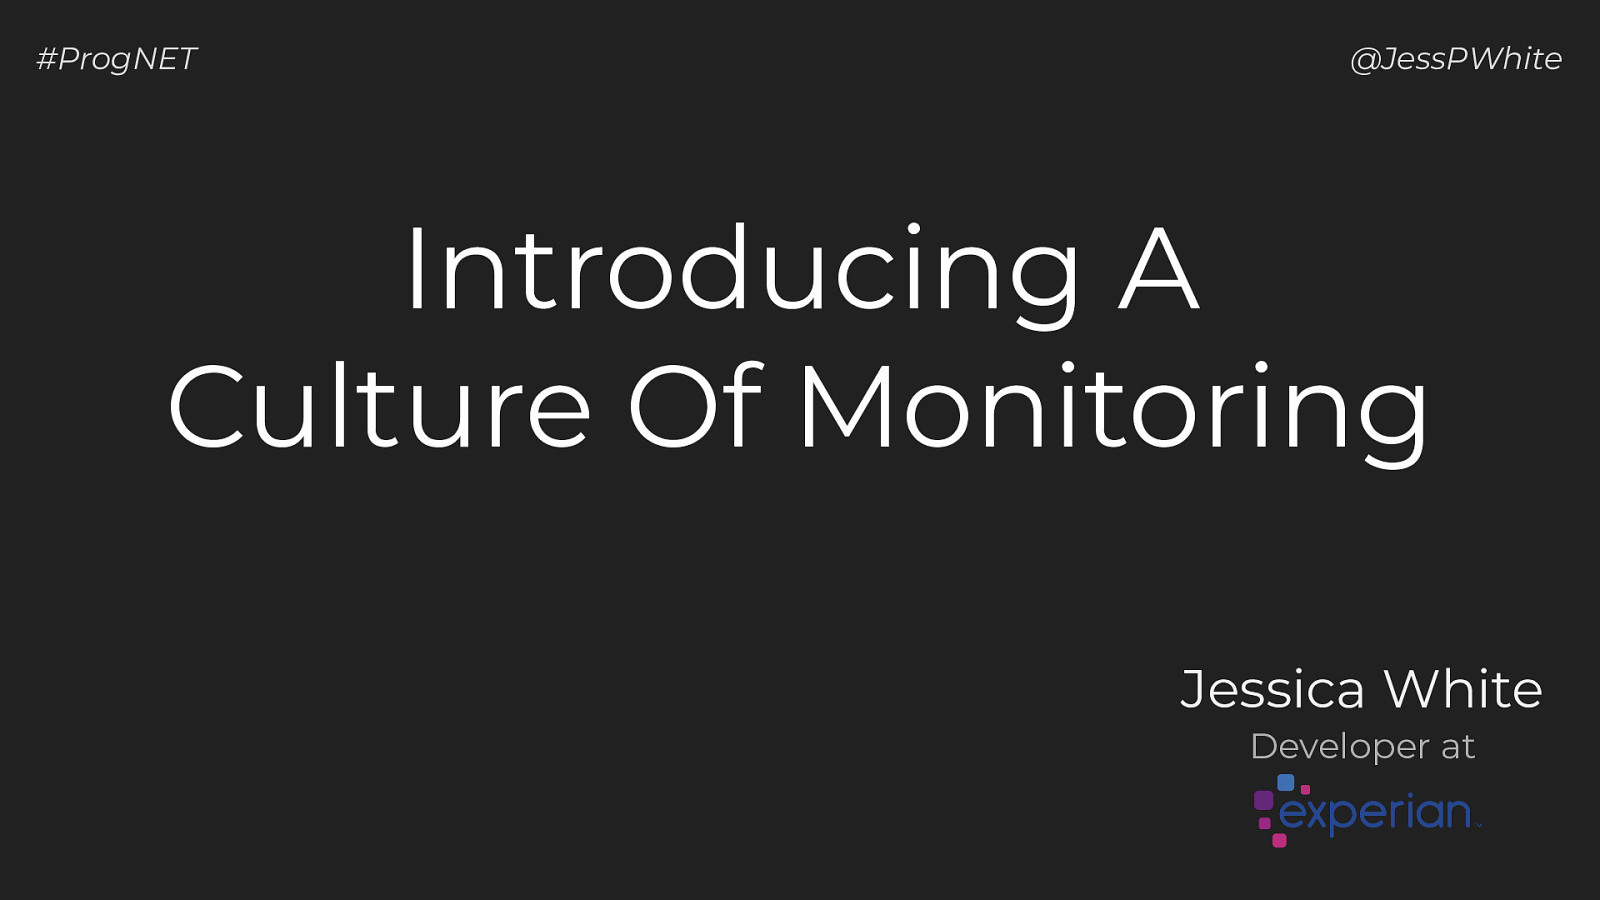 Introducing A Culture Of Monitoring